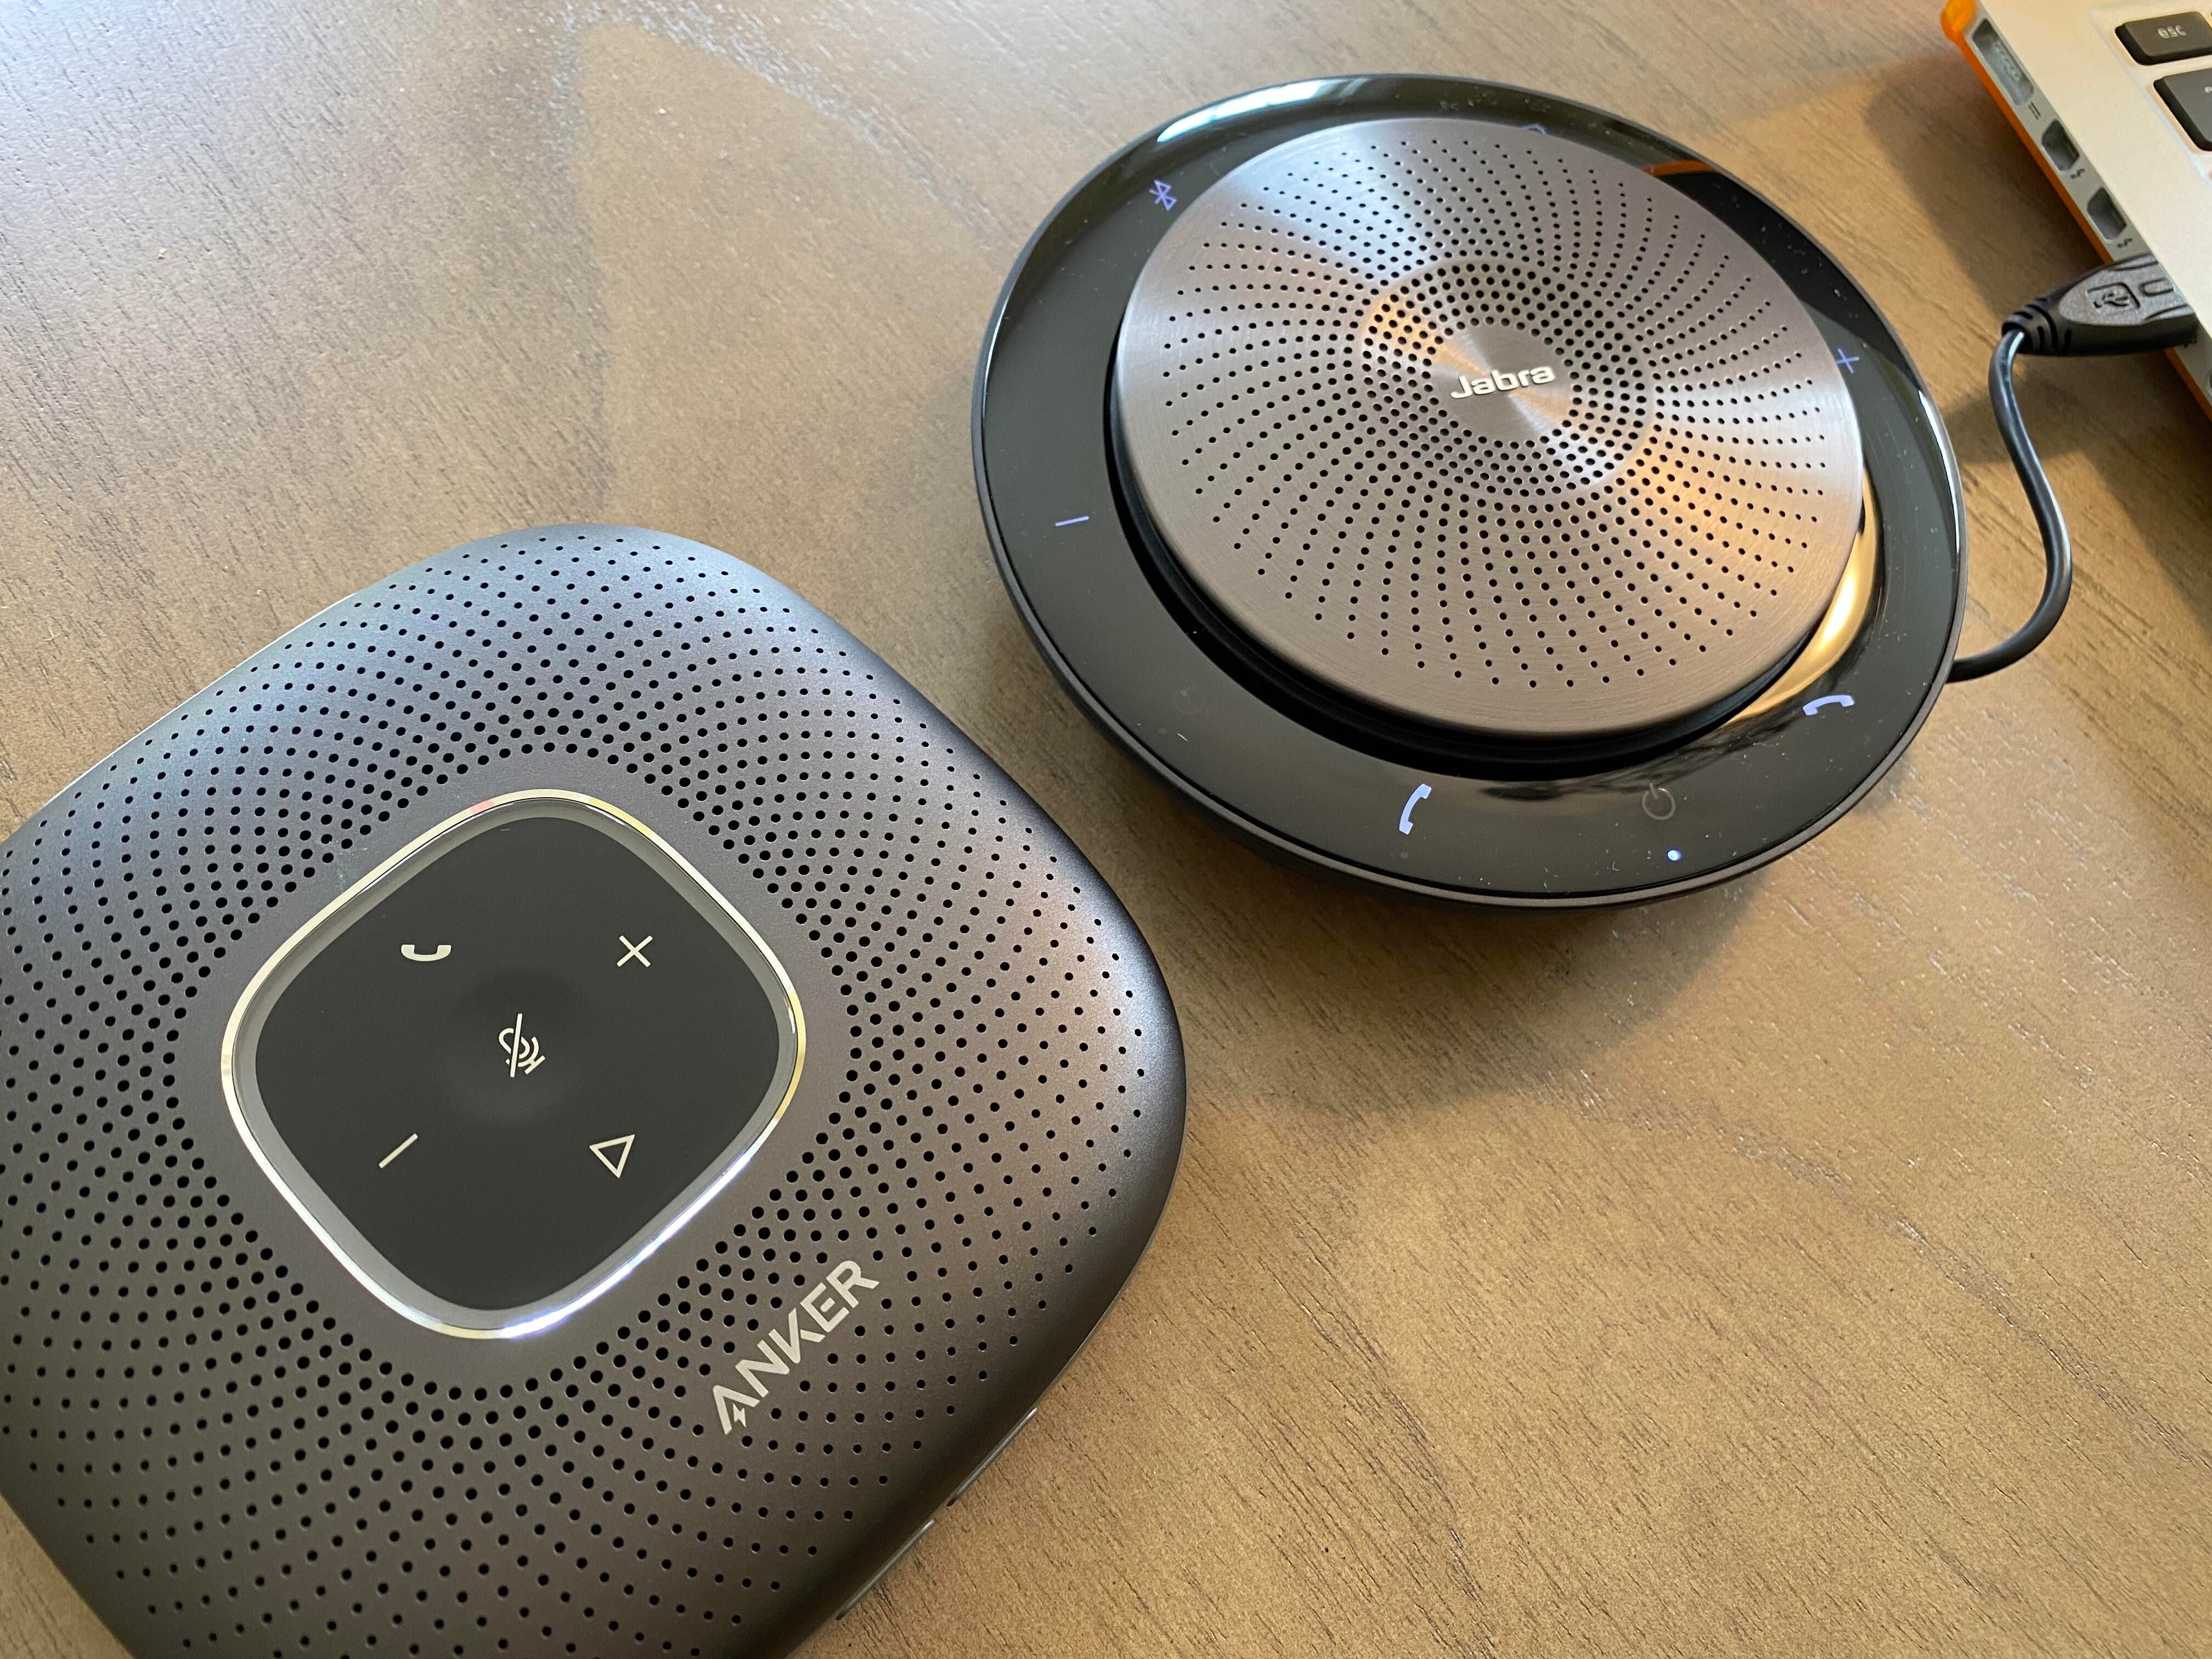 Best Speakerphone In 2020 For Working From Home Cnet